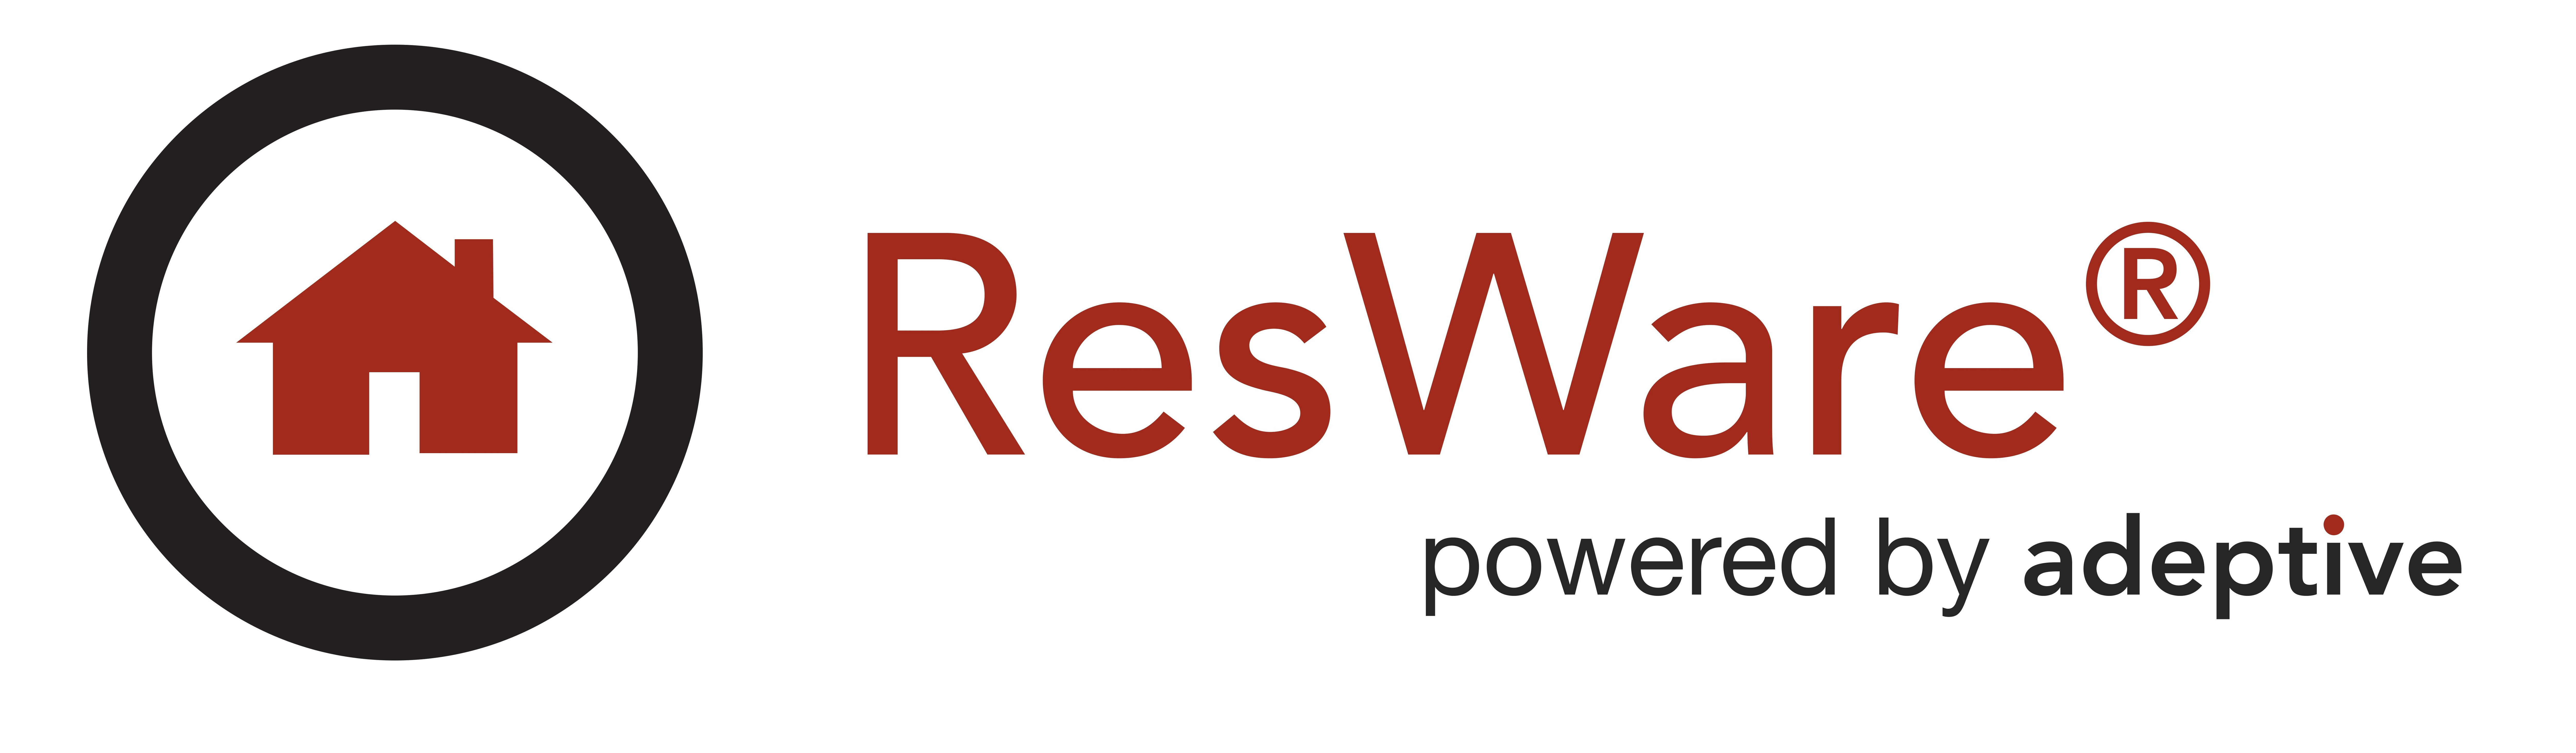 ResWare Title Production Software